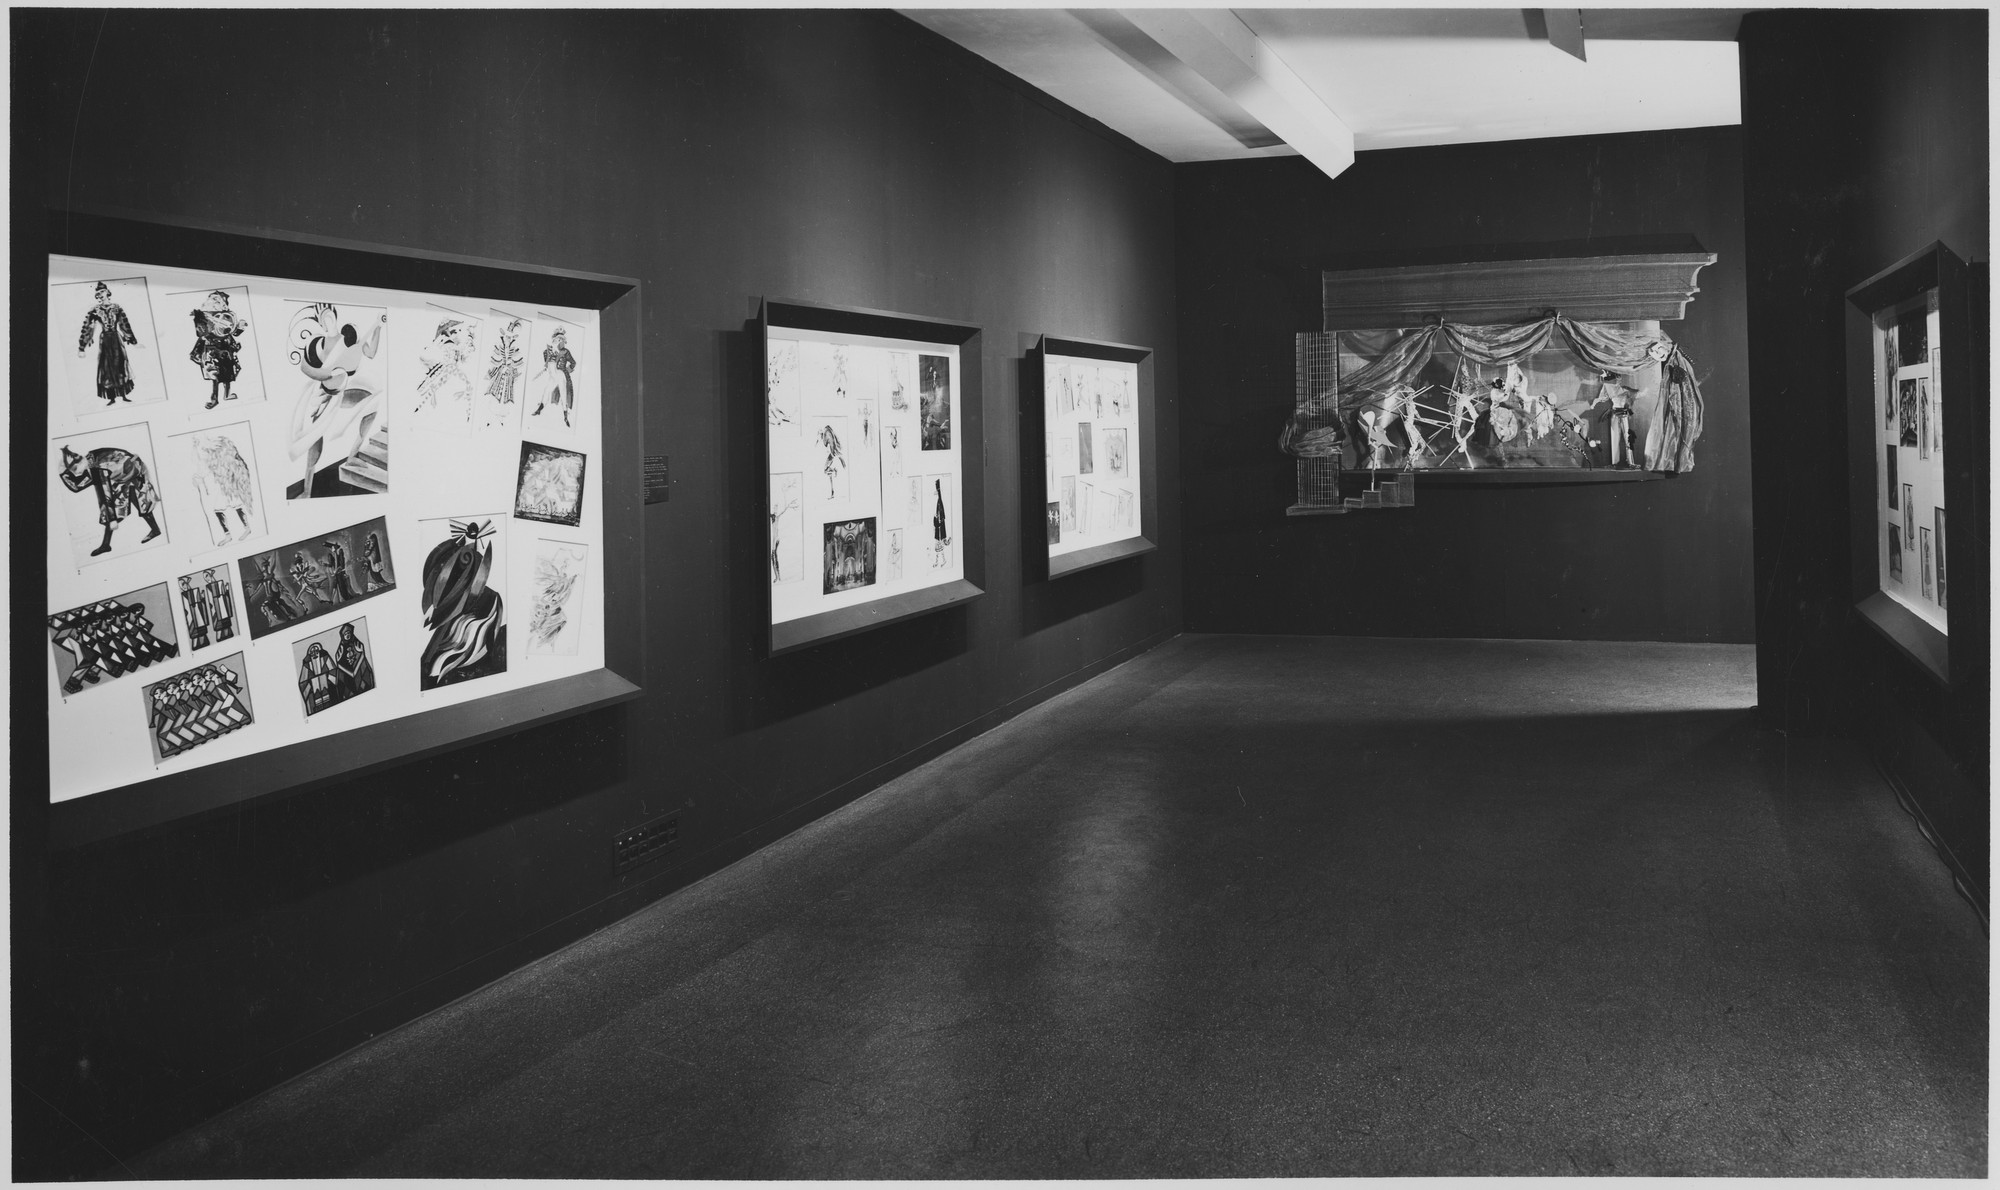 "Installation view of the exhibition, ""Dance and Theatre Design,"" in the series, ""Art in Progress:  15th Anniversary Exhibition."" May 24, 1944–September 17, 1944. Photographic Archive. The Museum of Modern Art Archives, New York. IN258d.1. Photograph by Soichi Sunami."